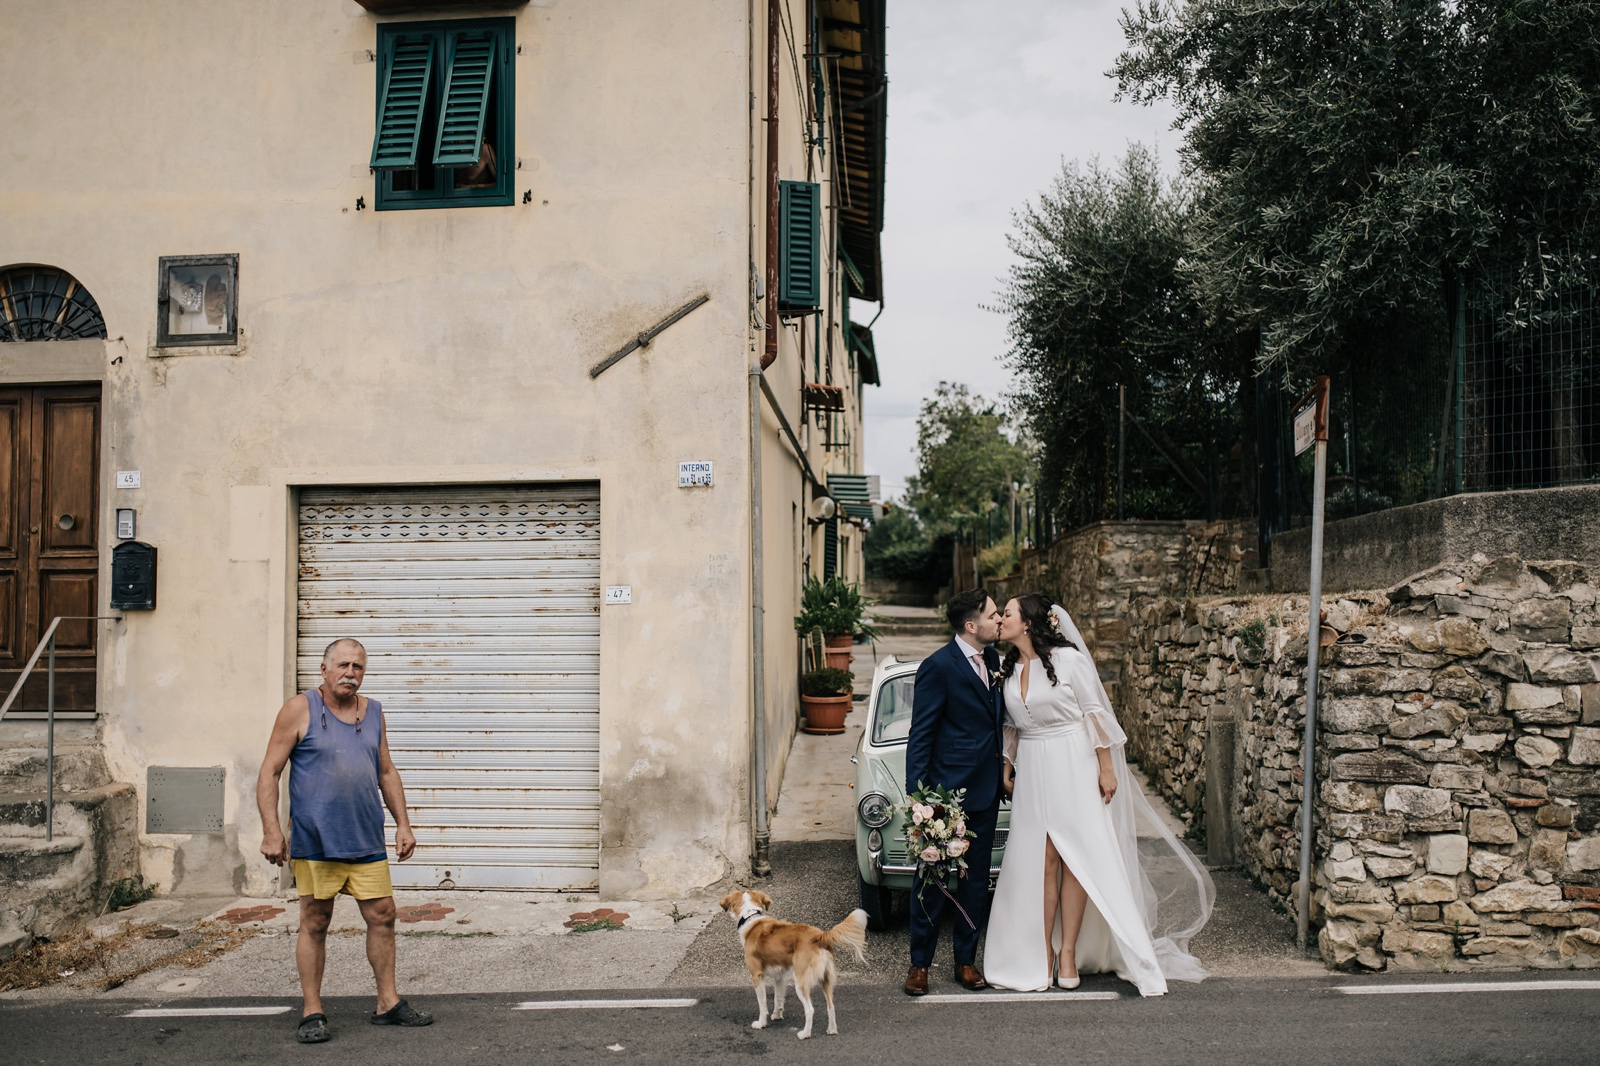 Chinese Wedding in Florence. Chinese and Catholic wedding ceremony: Kerrie & Felix. Olivia Sodi professional Wedding Planner & Designer in Tuscany, Florence, Siena, Chianti, Val d'Orcia.